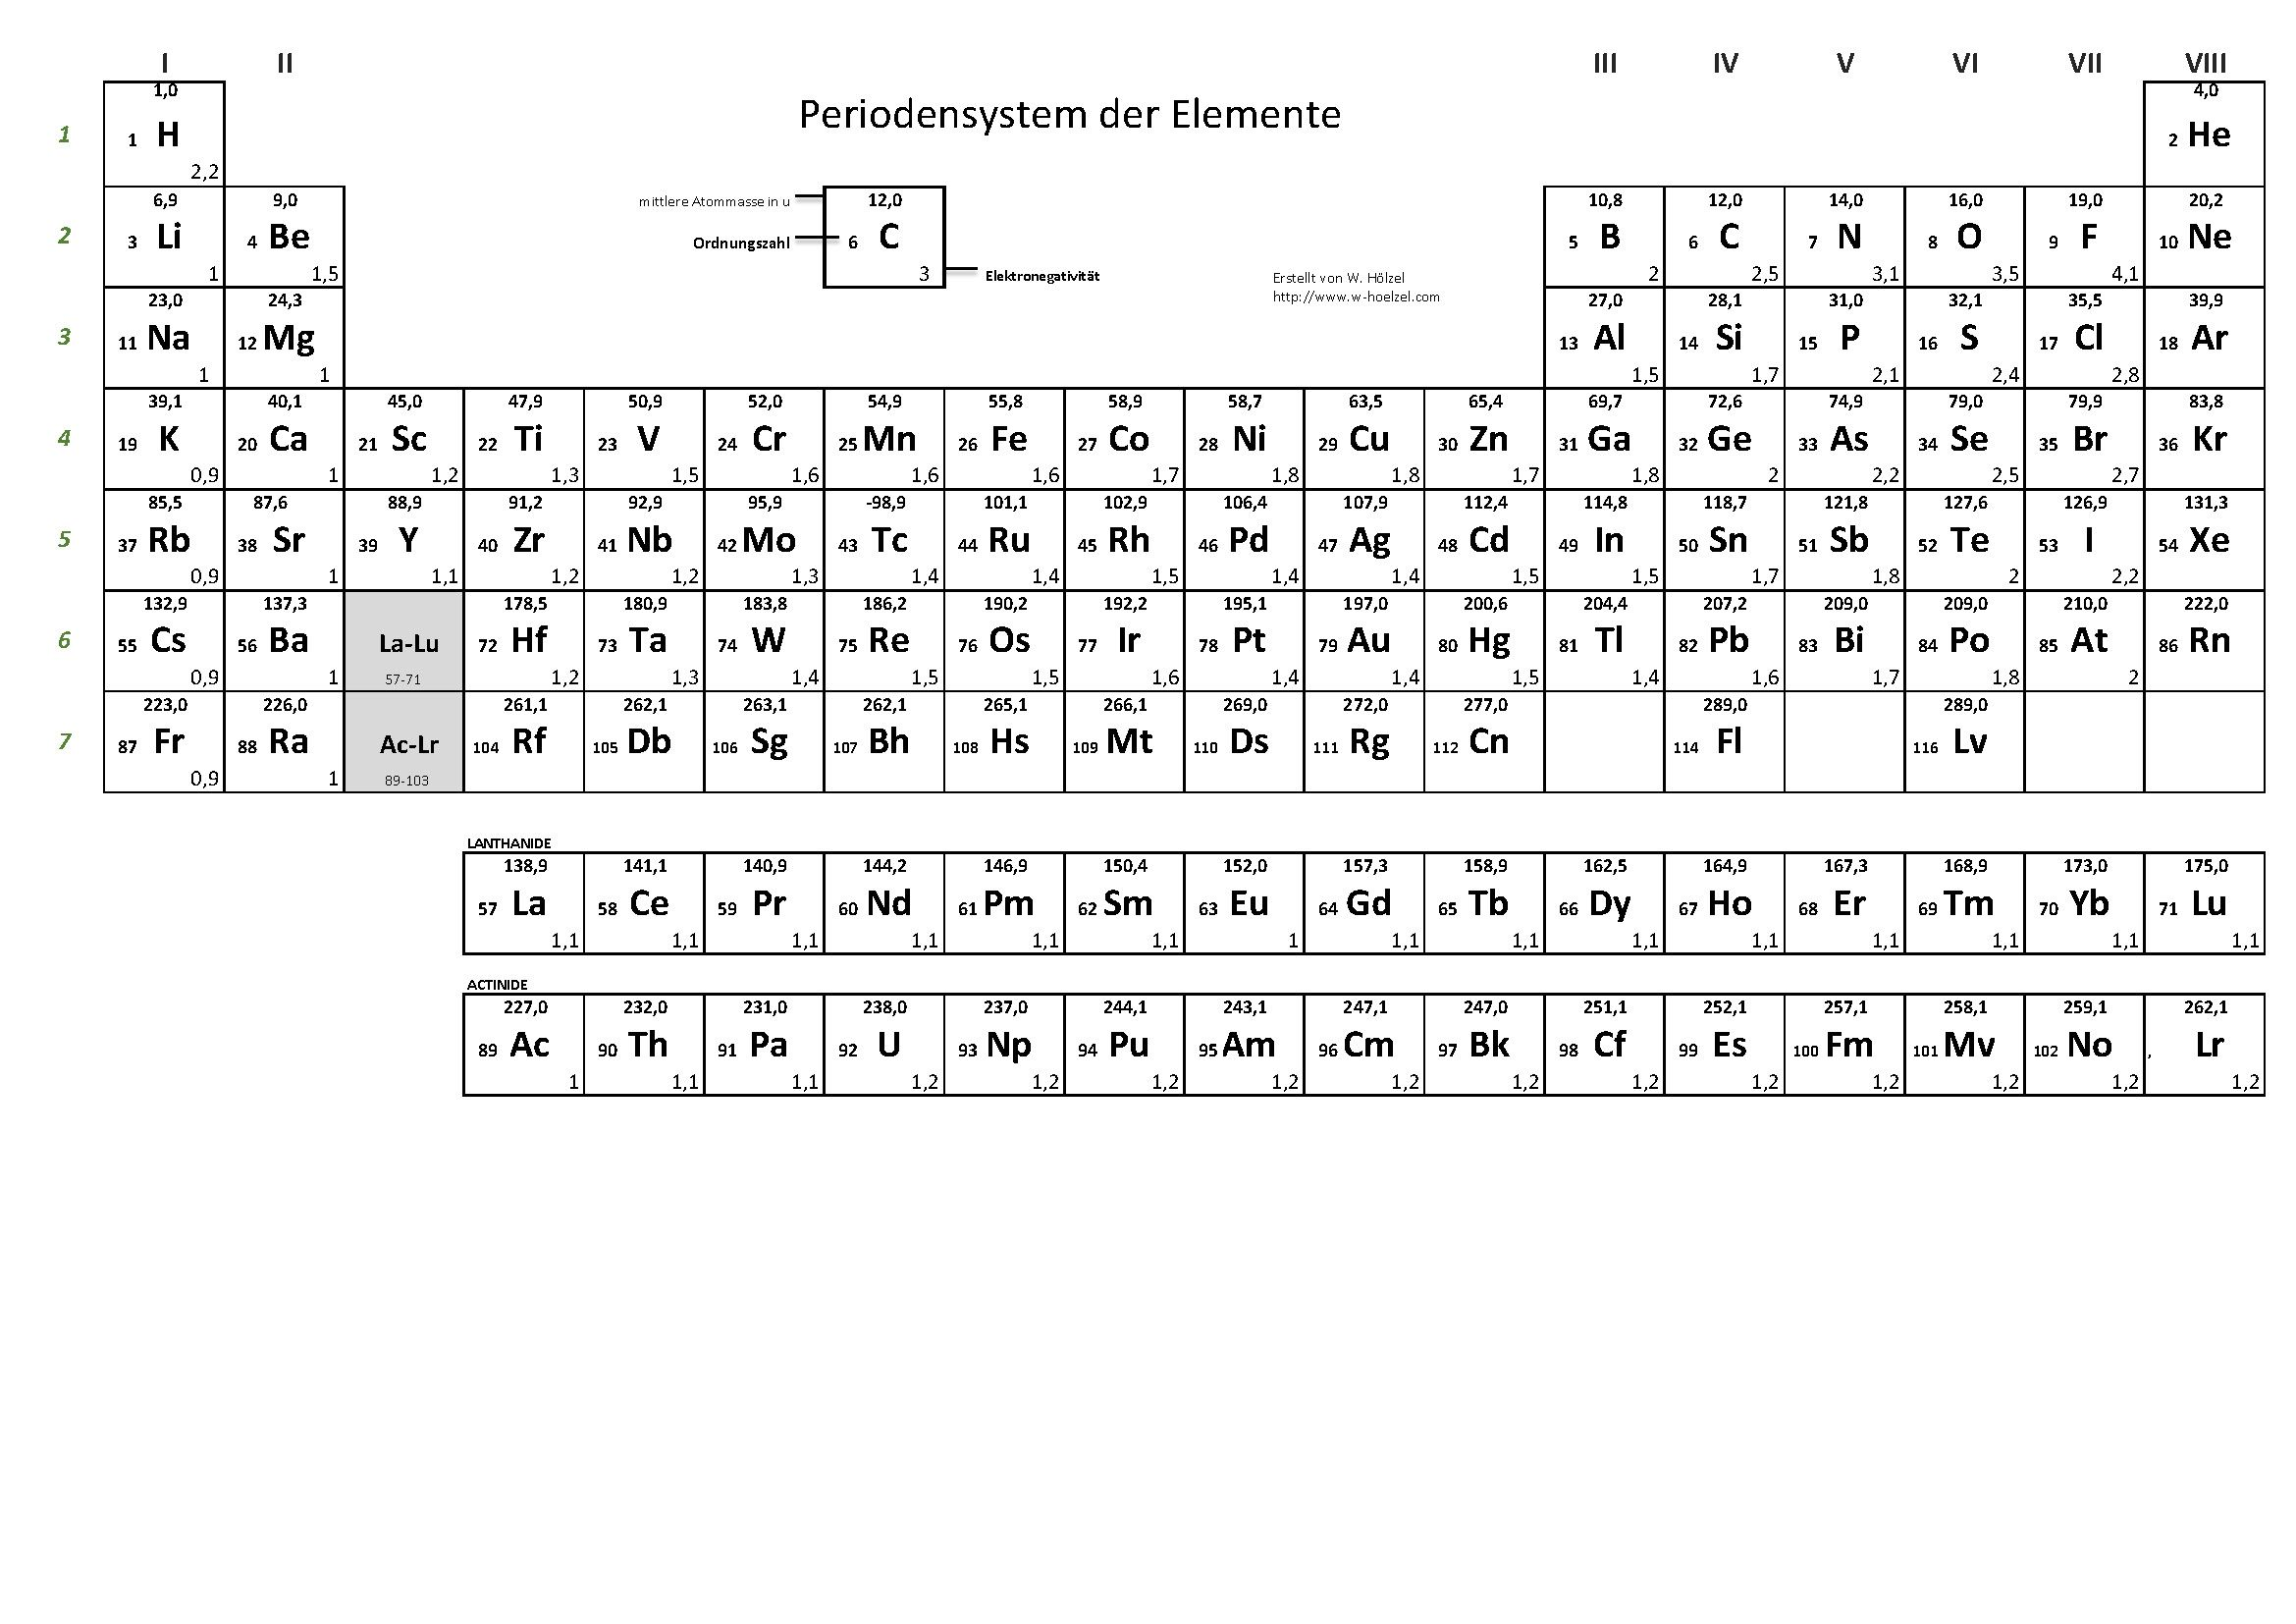 Pin by INI 69 on Kinder Schule | Pinterest